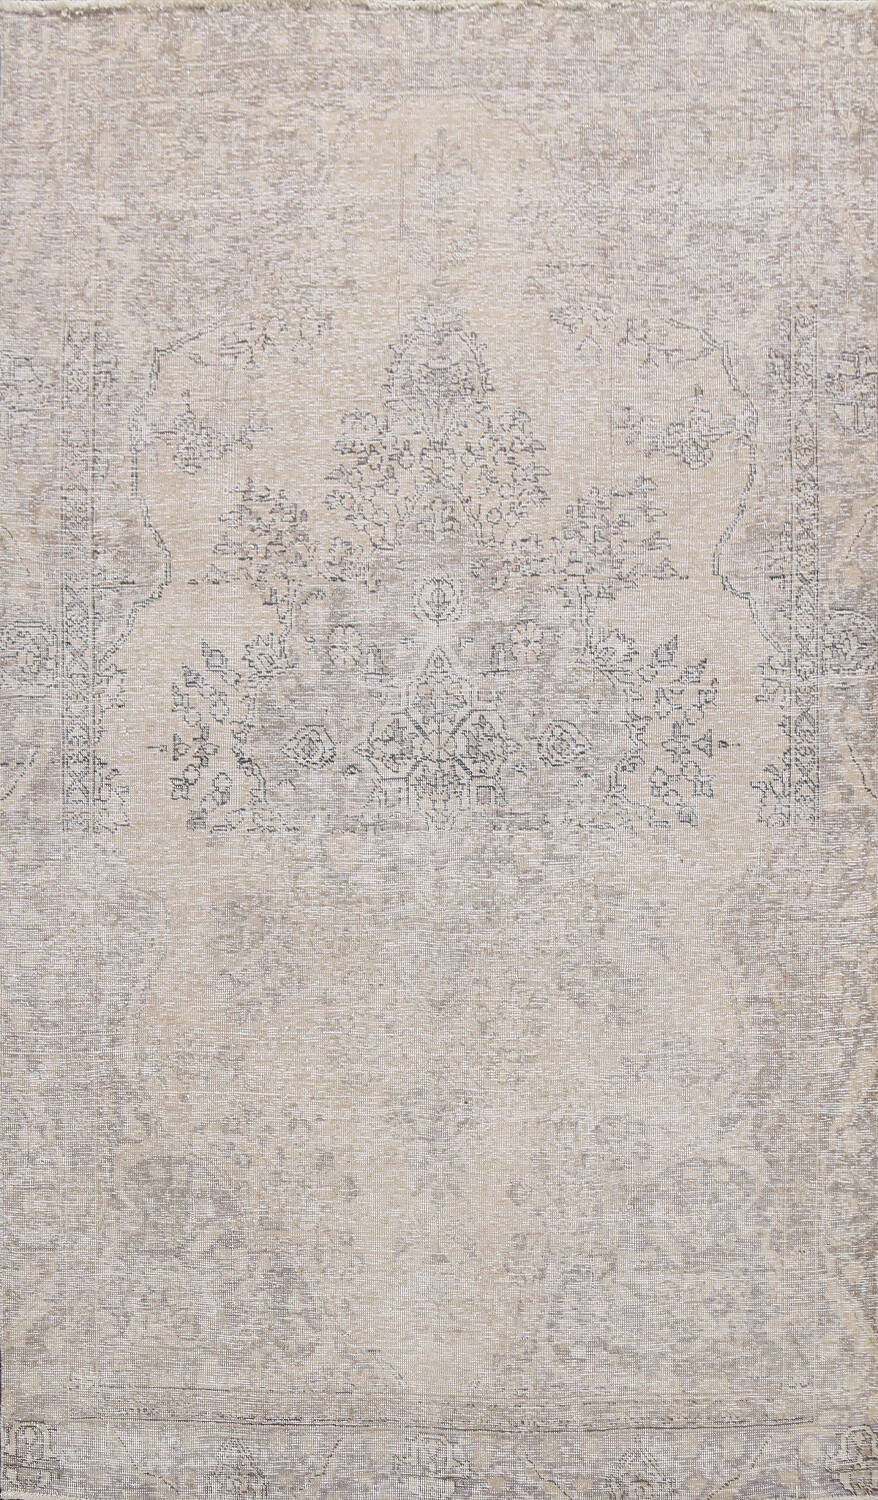 Muted Distressed Floral Tabriz Persian Area Rug 6x8 image 1